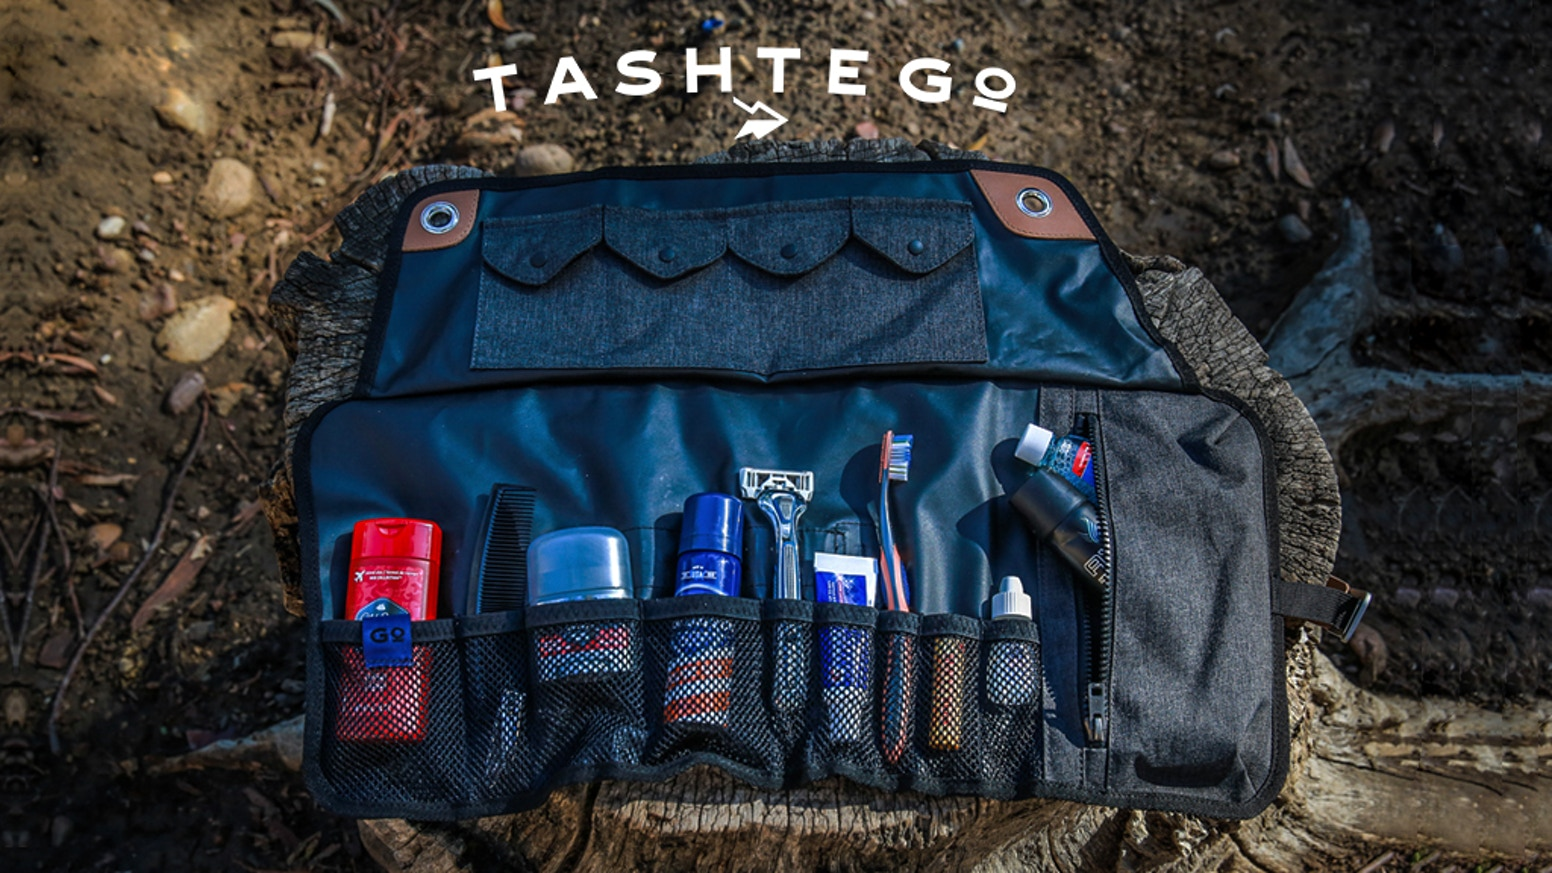 Redesigned to be stretchier, waterproof, and easier to use - Kickstarter's most loved toiletries travel roll is back and even better!